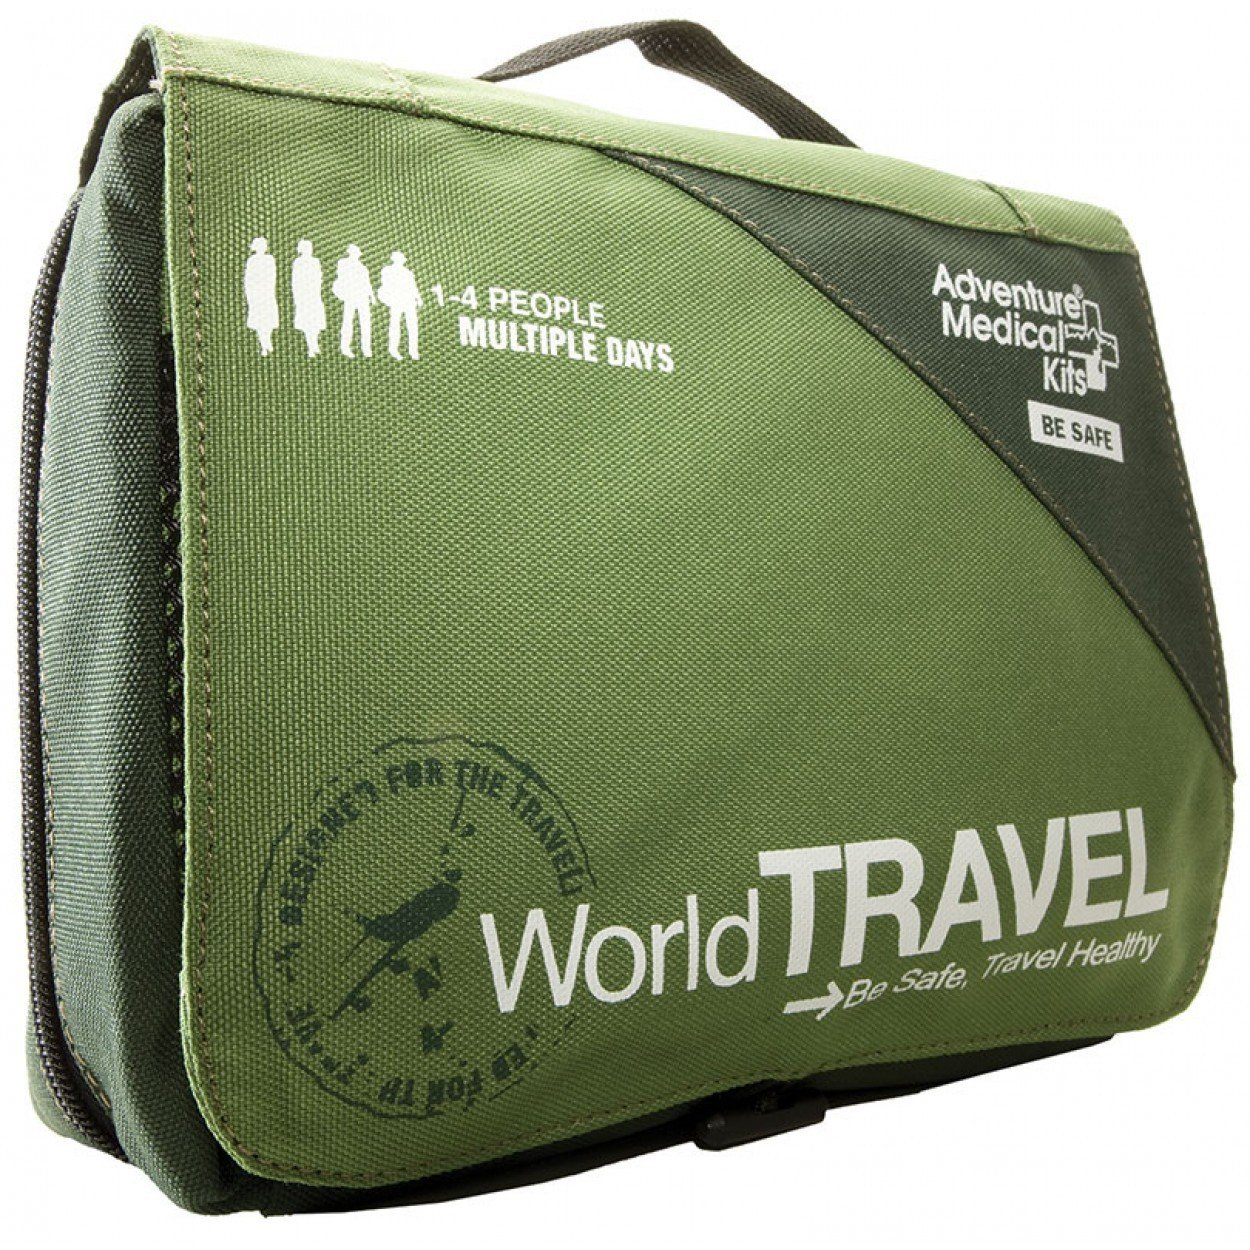 Adventure Medical Kit Mountain Series World Travel Medical Kit